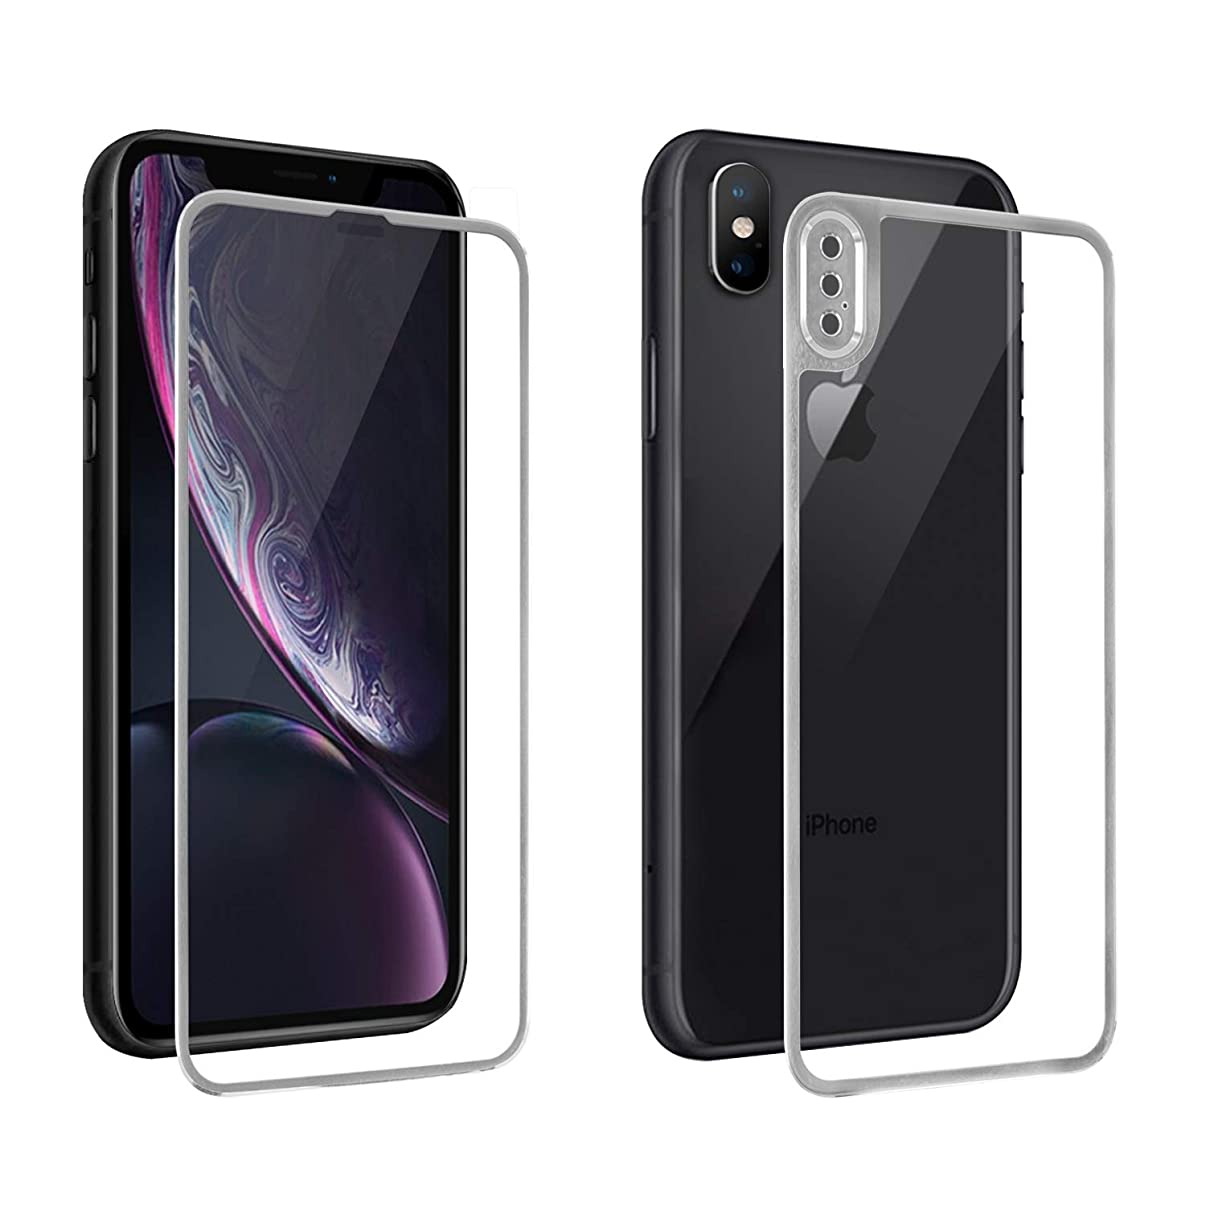 [Camera Armor] iPhone XR Screen Protector Glass, Front & Back Full Coverage 3D Curved Tempered Glass Screen Protector 9H Hardness Glass + Titanium Edge Protection 0.26mm HD (Silver, for iPhone XR)